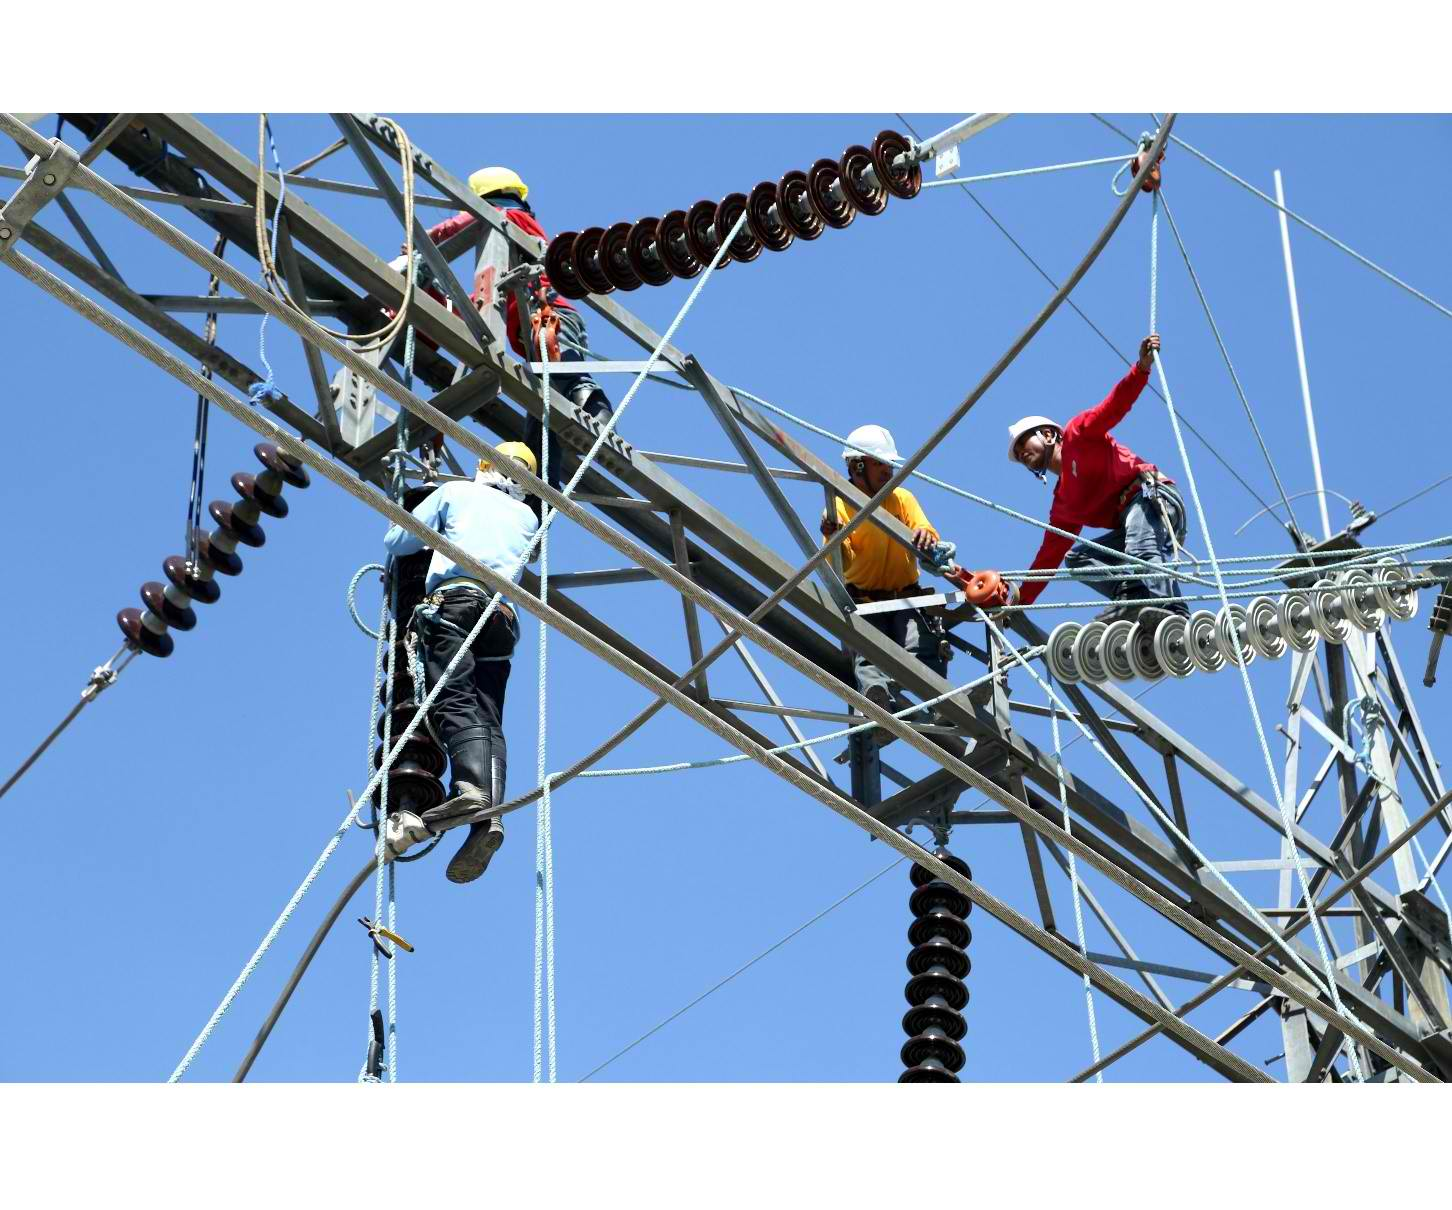 The power firm said in an advisory that the grid lost a capacity of 2,584 megawatts. It affected Batangas, Laguna, Quezon, Ilocos Sur, La Union, Pangasinan, Bataan, Tarlac and Nueva Ecija. (Photo: National Grid Corp. of the Philippines )